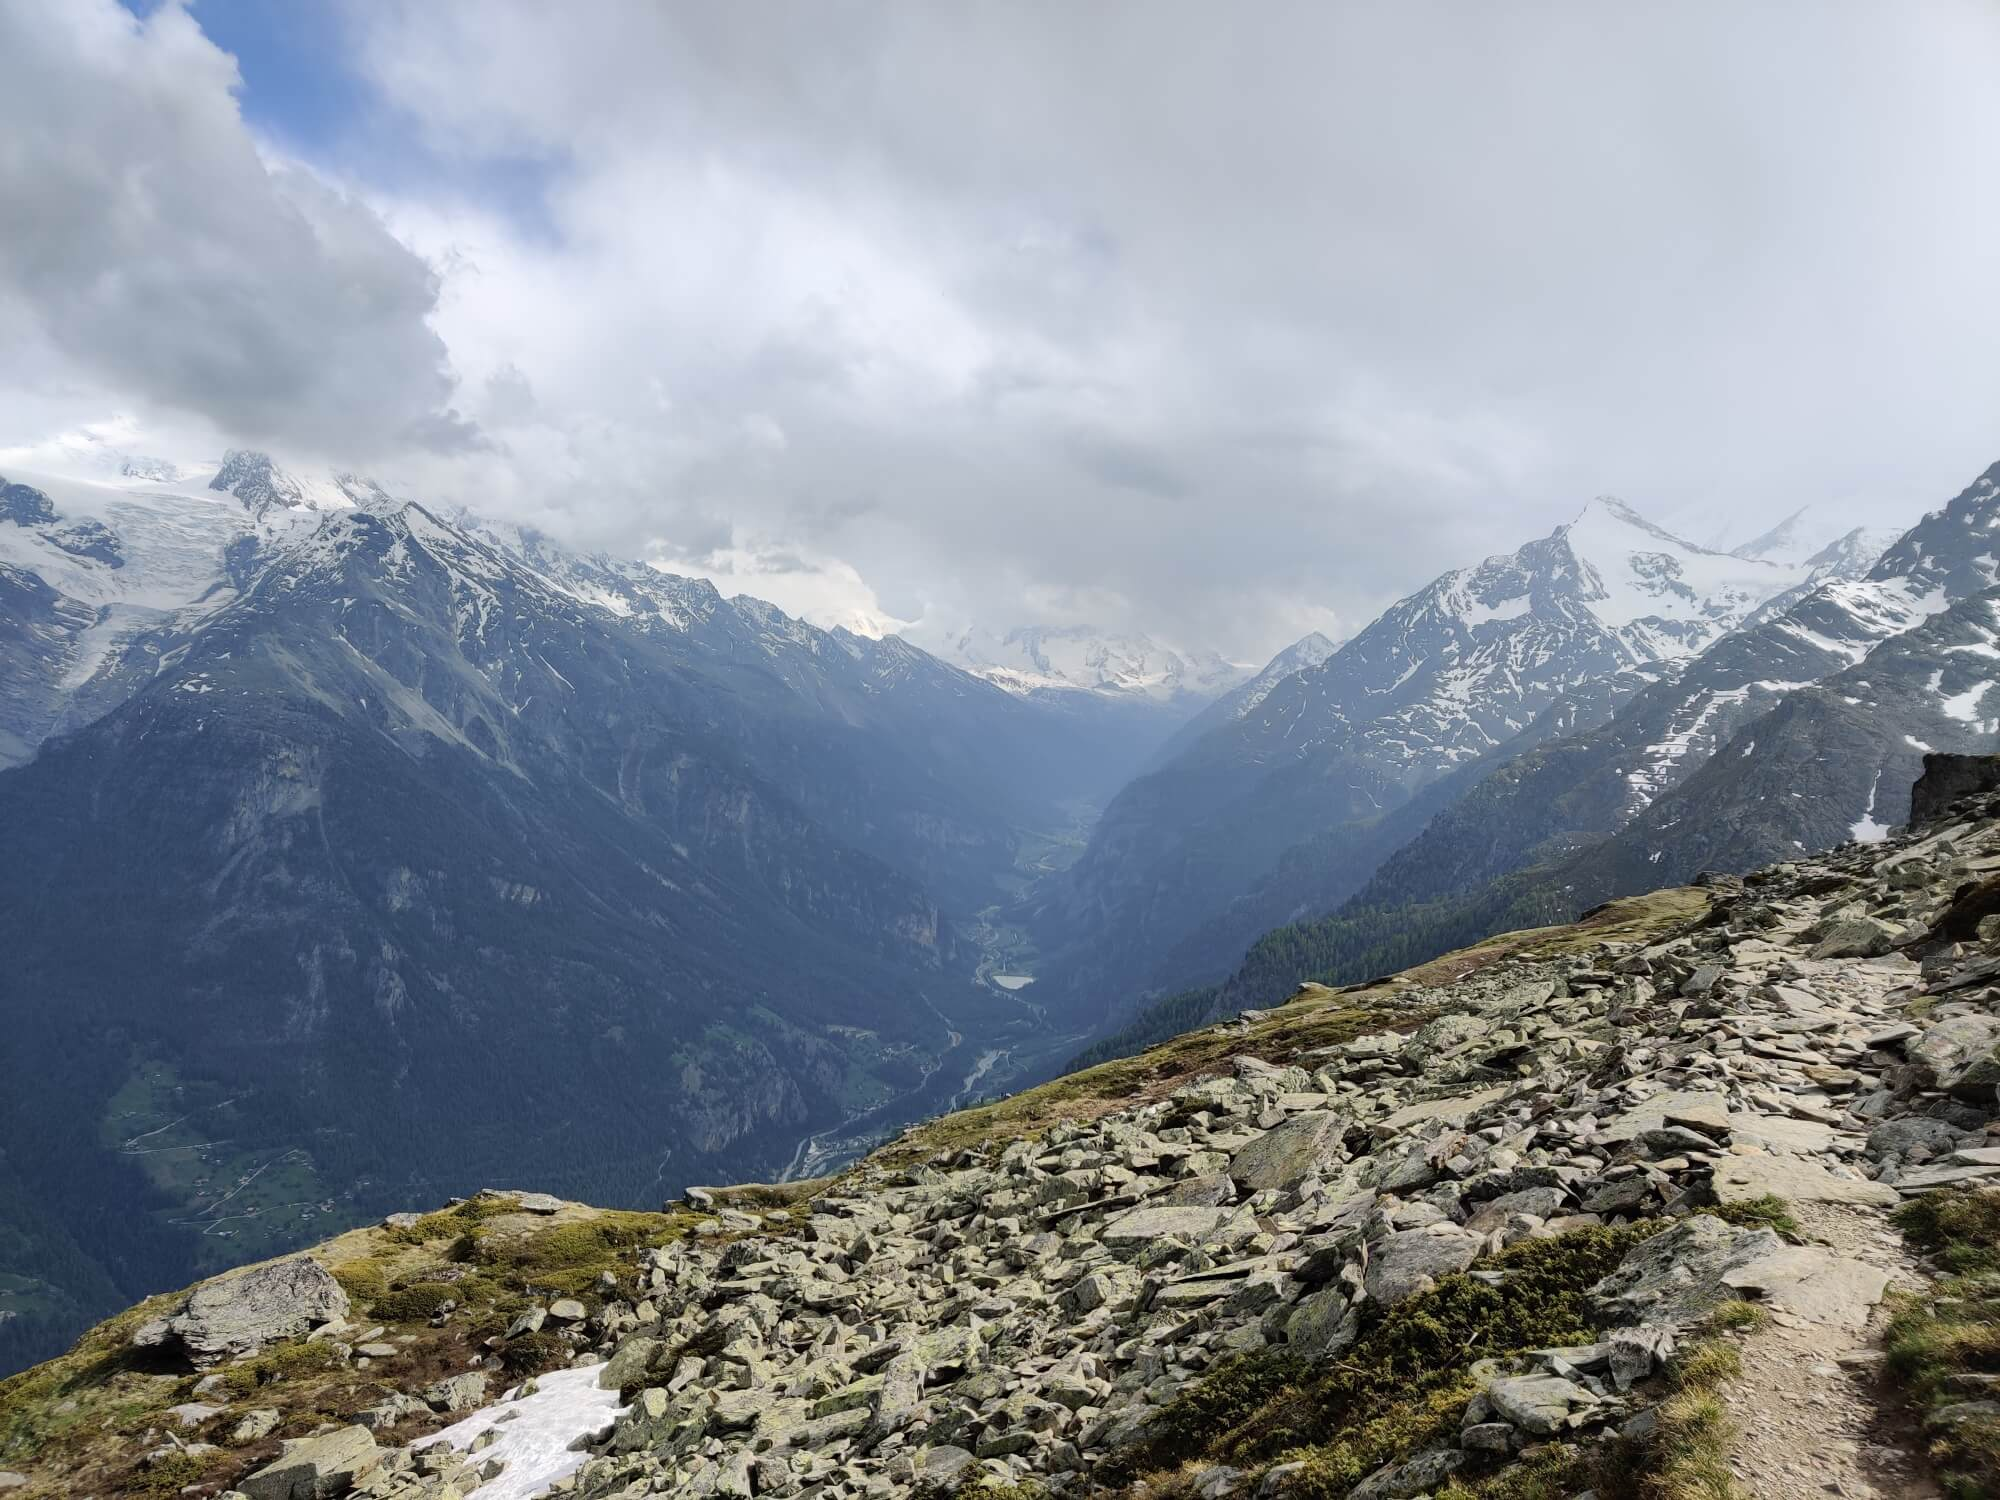 Mattertal Valley:  Once of the best spots for a picnic and a photo on the trail